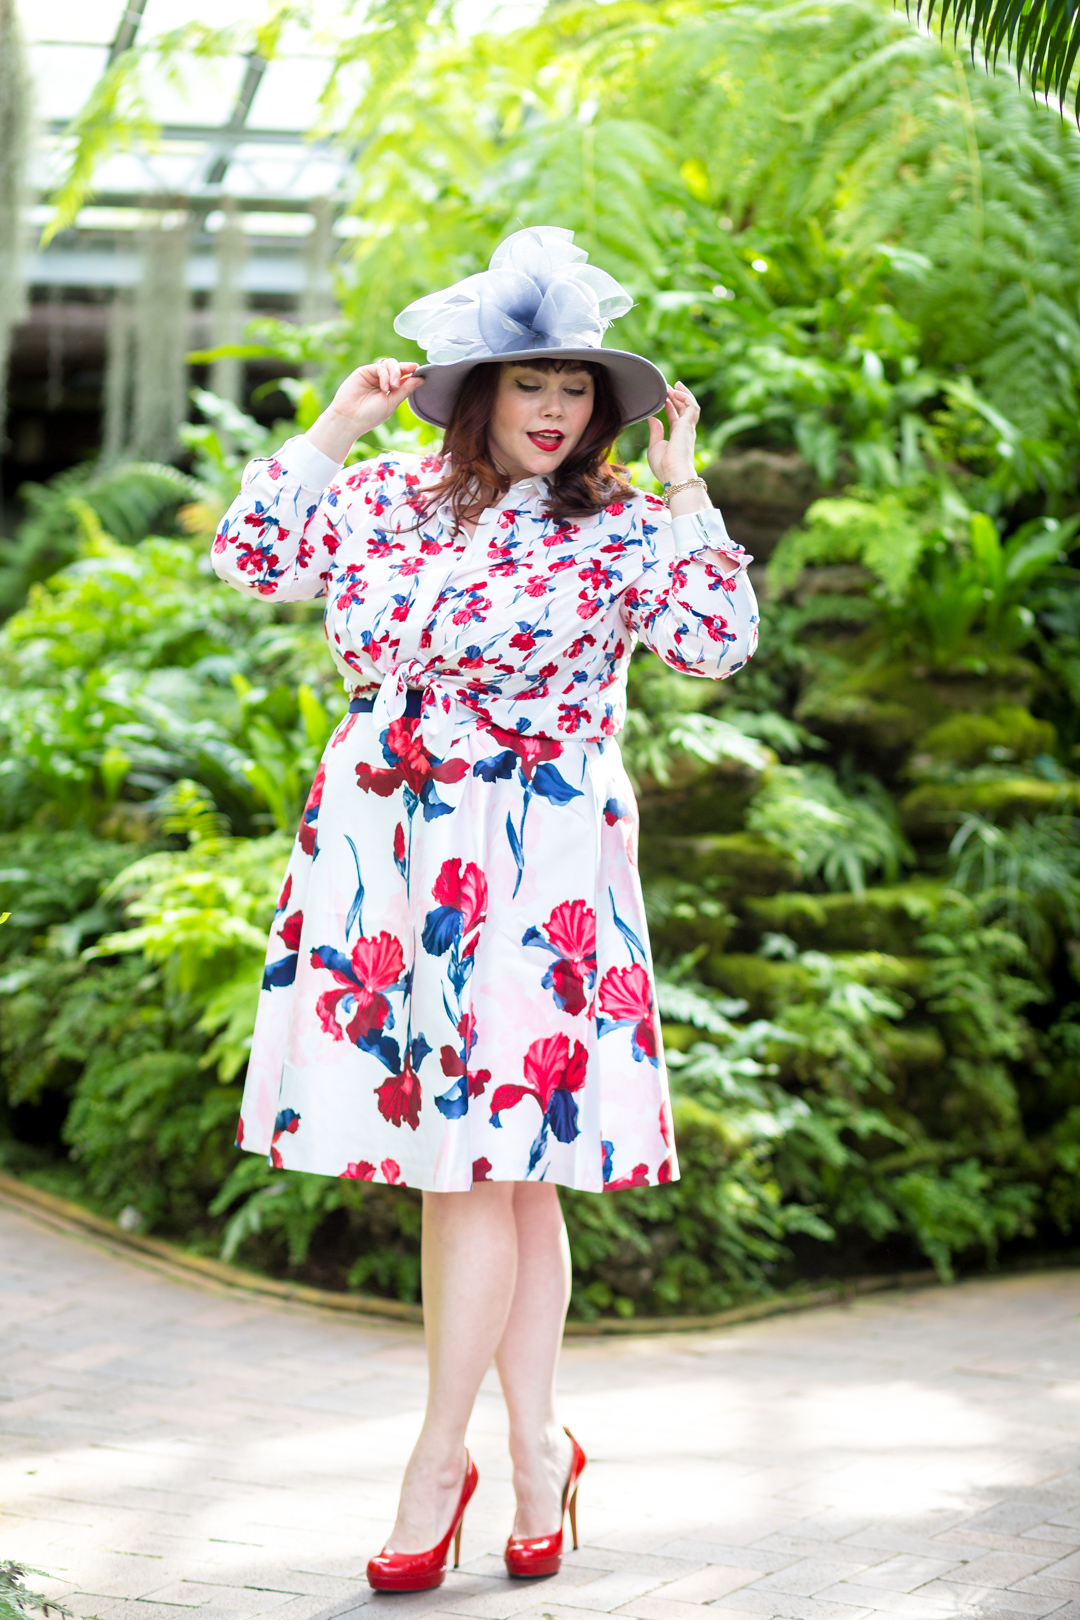 Spring Fashion: Flower Power From Prabal Gurung x Lane Bryant Collection